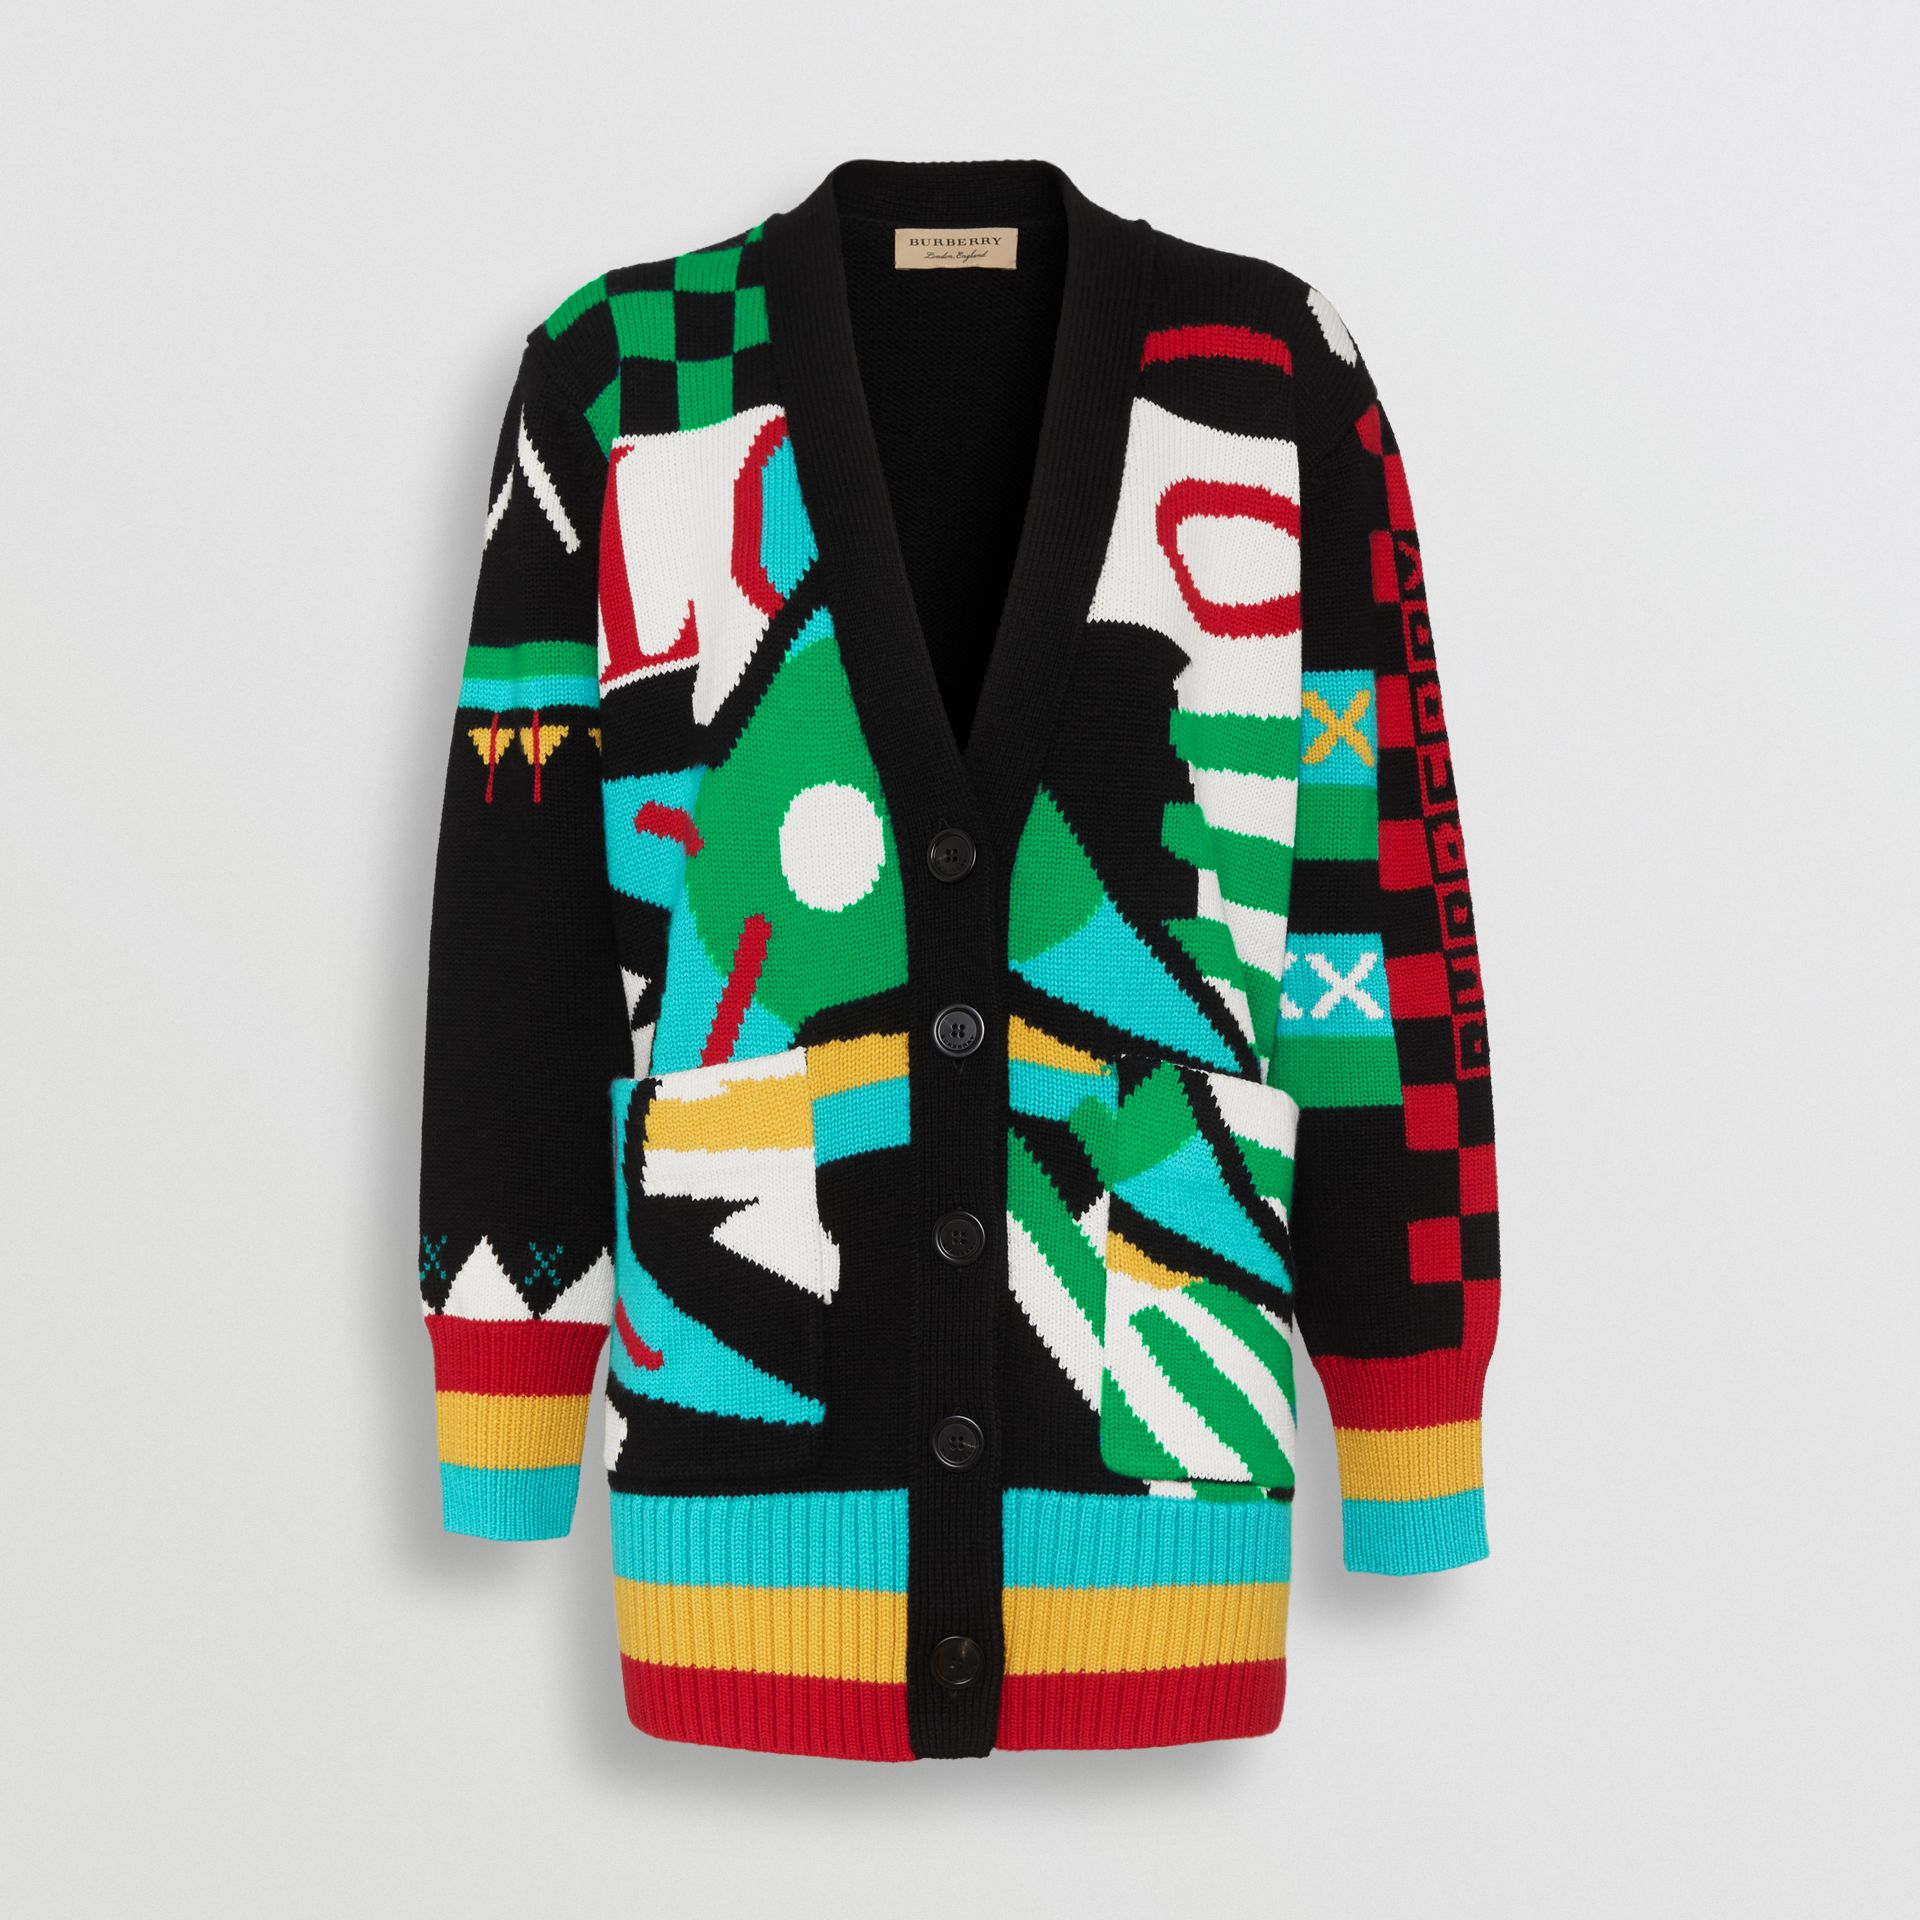 Graphic Intarsia Merino Wool Cotton Cardigan in Multicolour - Women | Burberry Singapore - gallery image 3